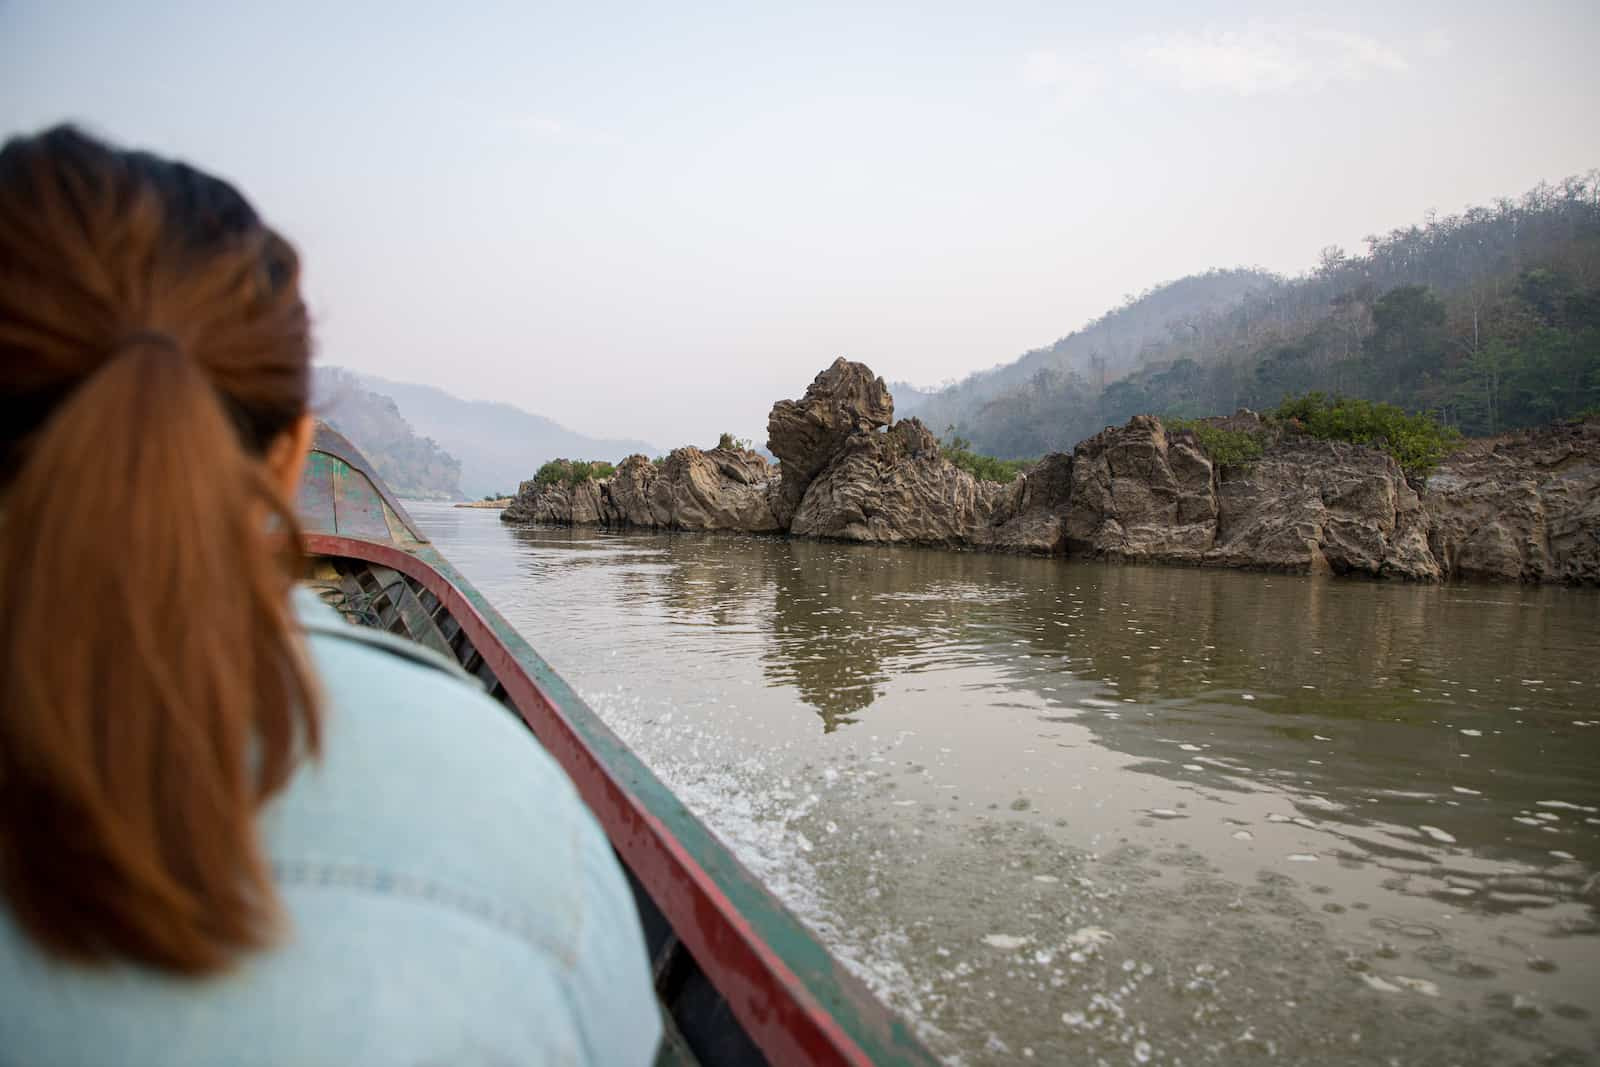 A woman rides on a canoe down a river surrounded by rocks and mountains.